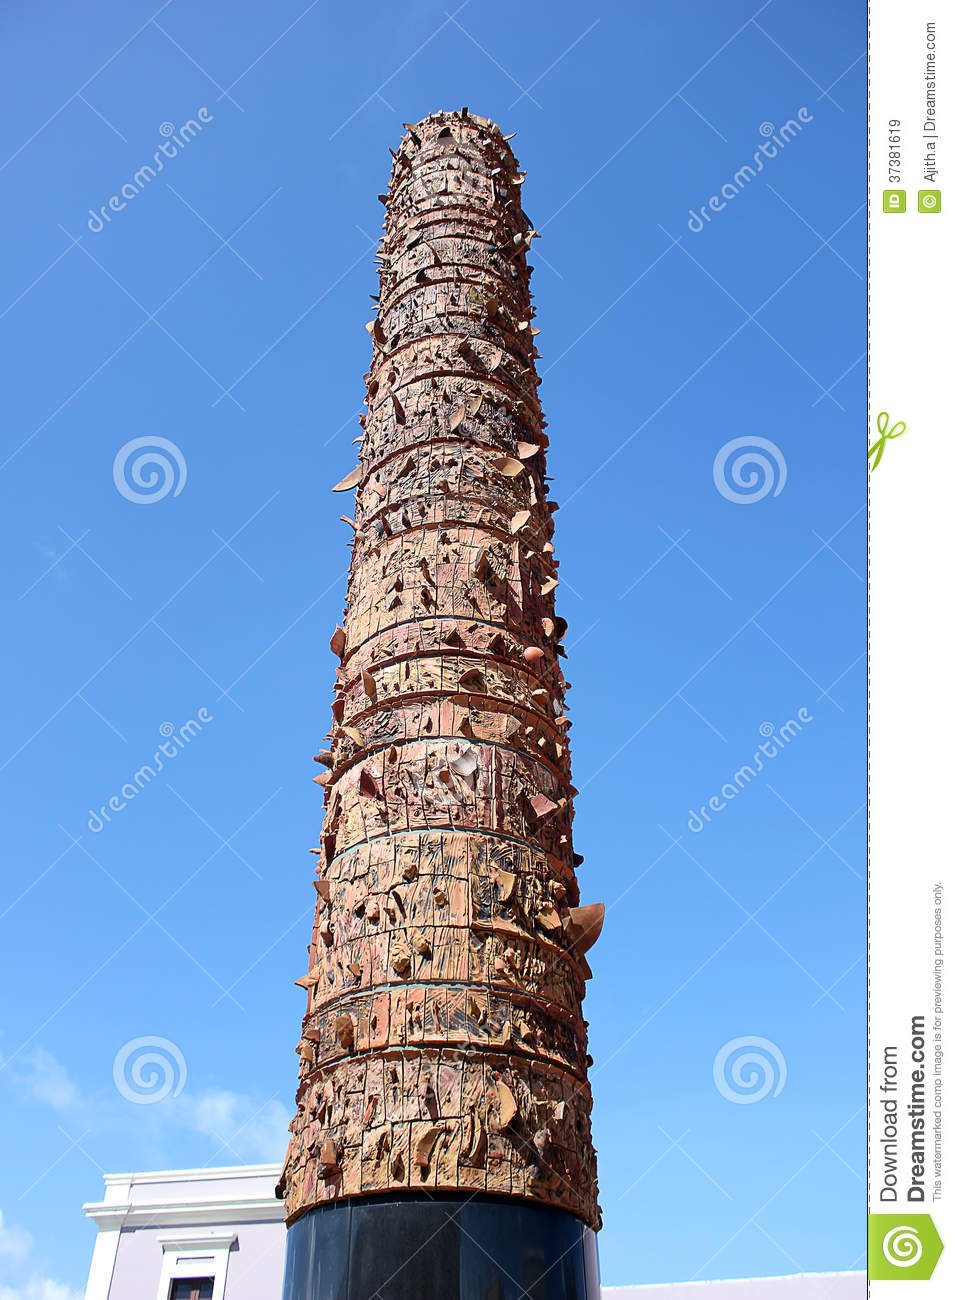 el totem teluric monument royalty free stock images clip art palm trees and beach clip art palm tree plan view